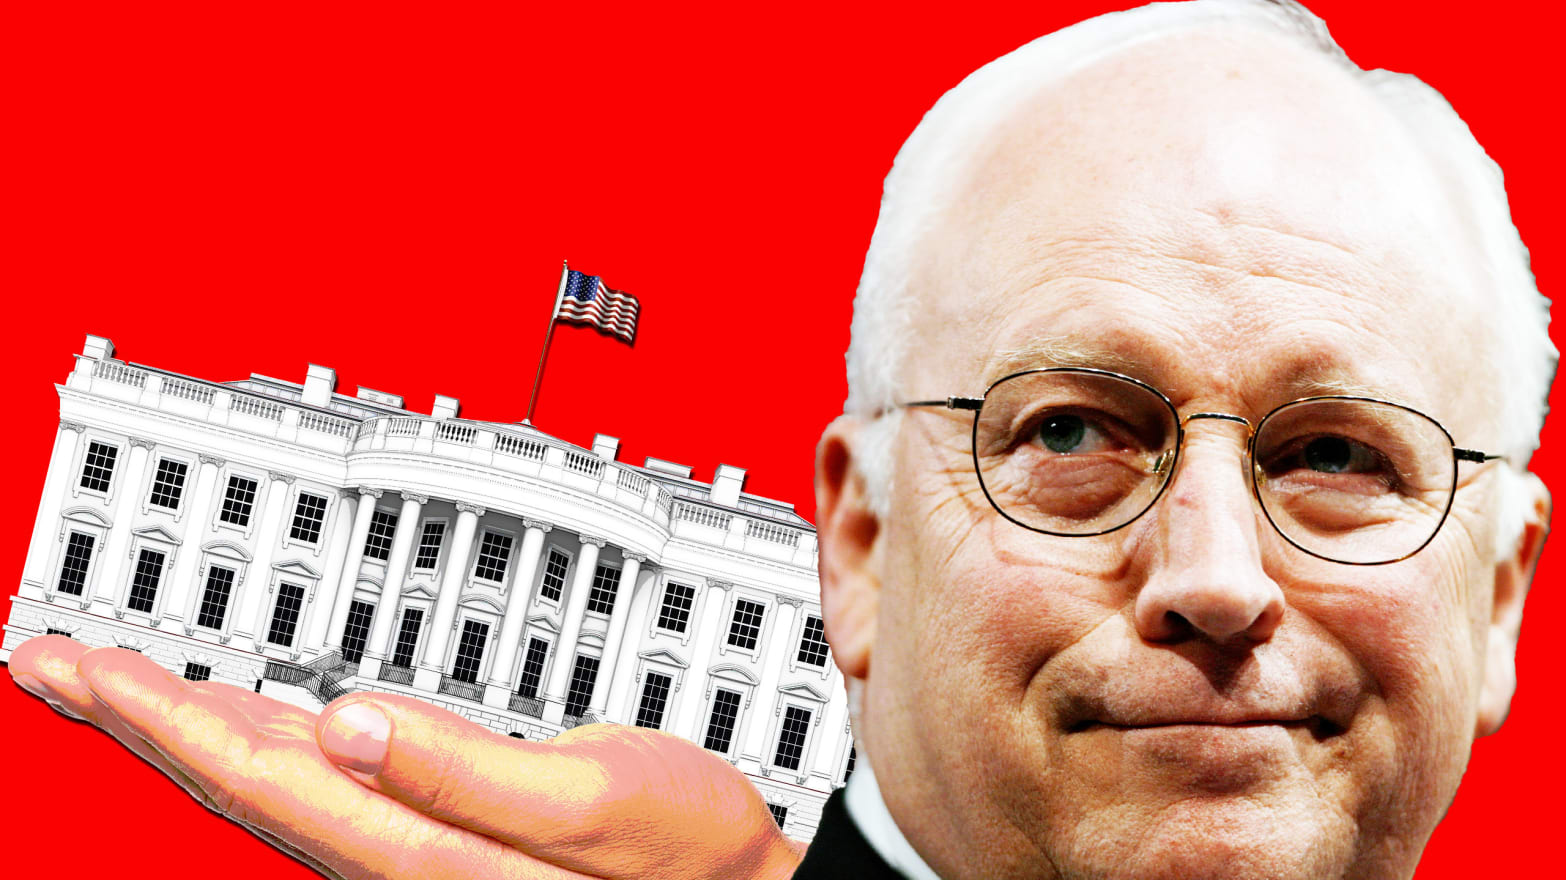 Dick cheney and reagan administration apologise